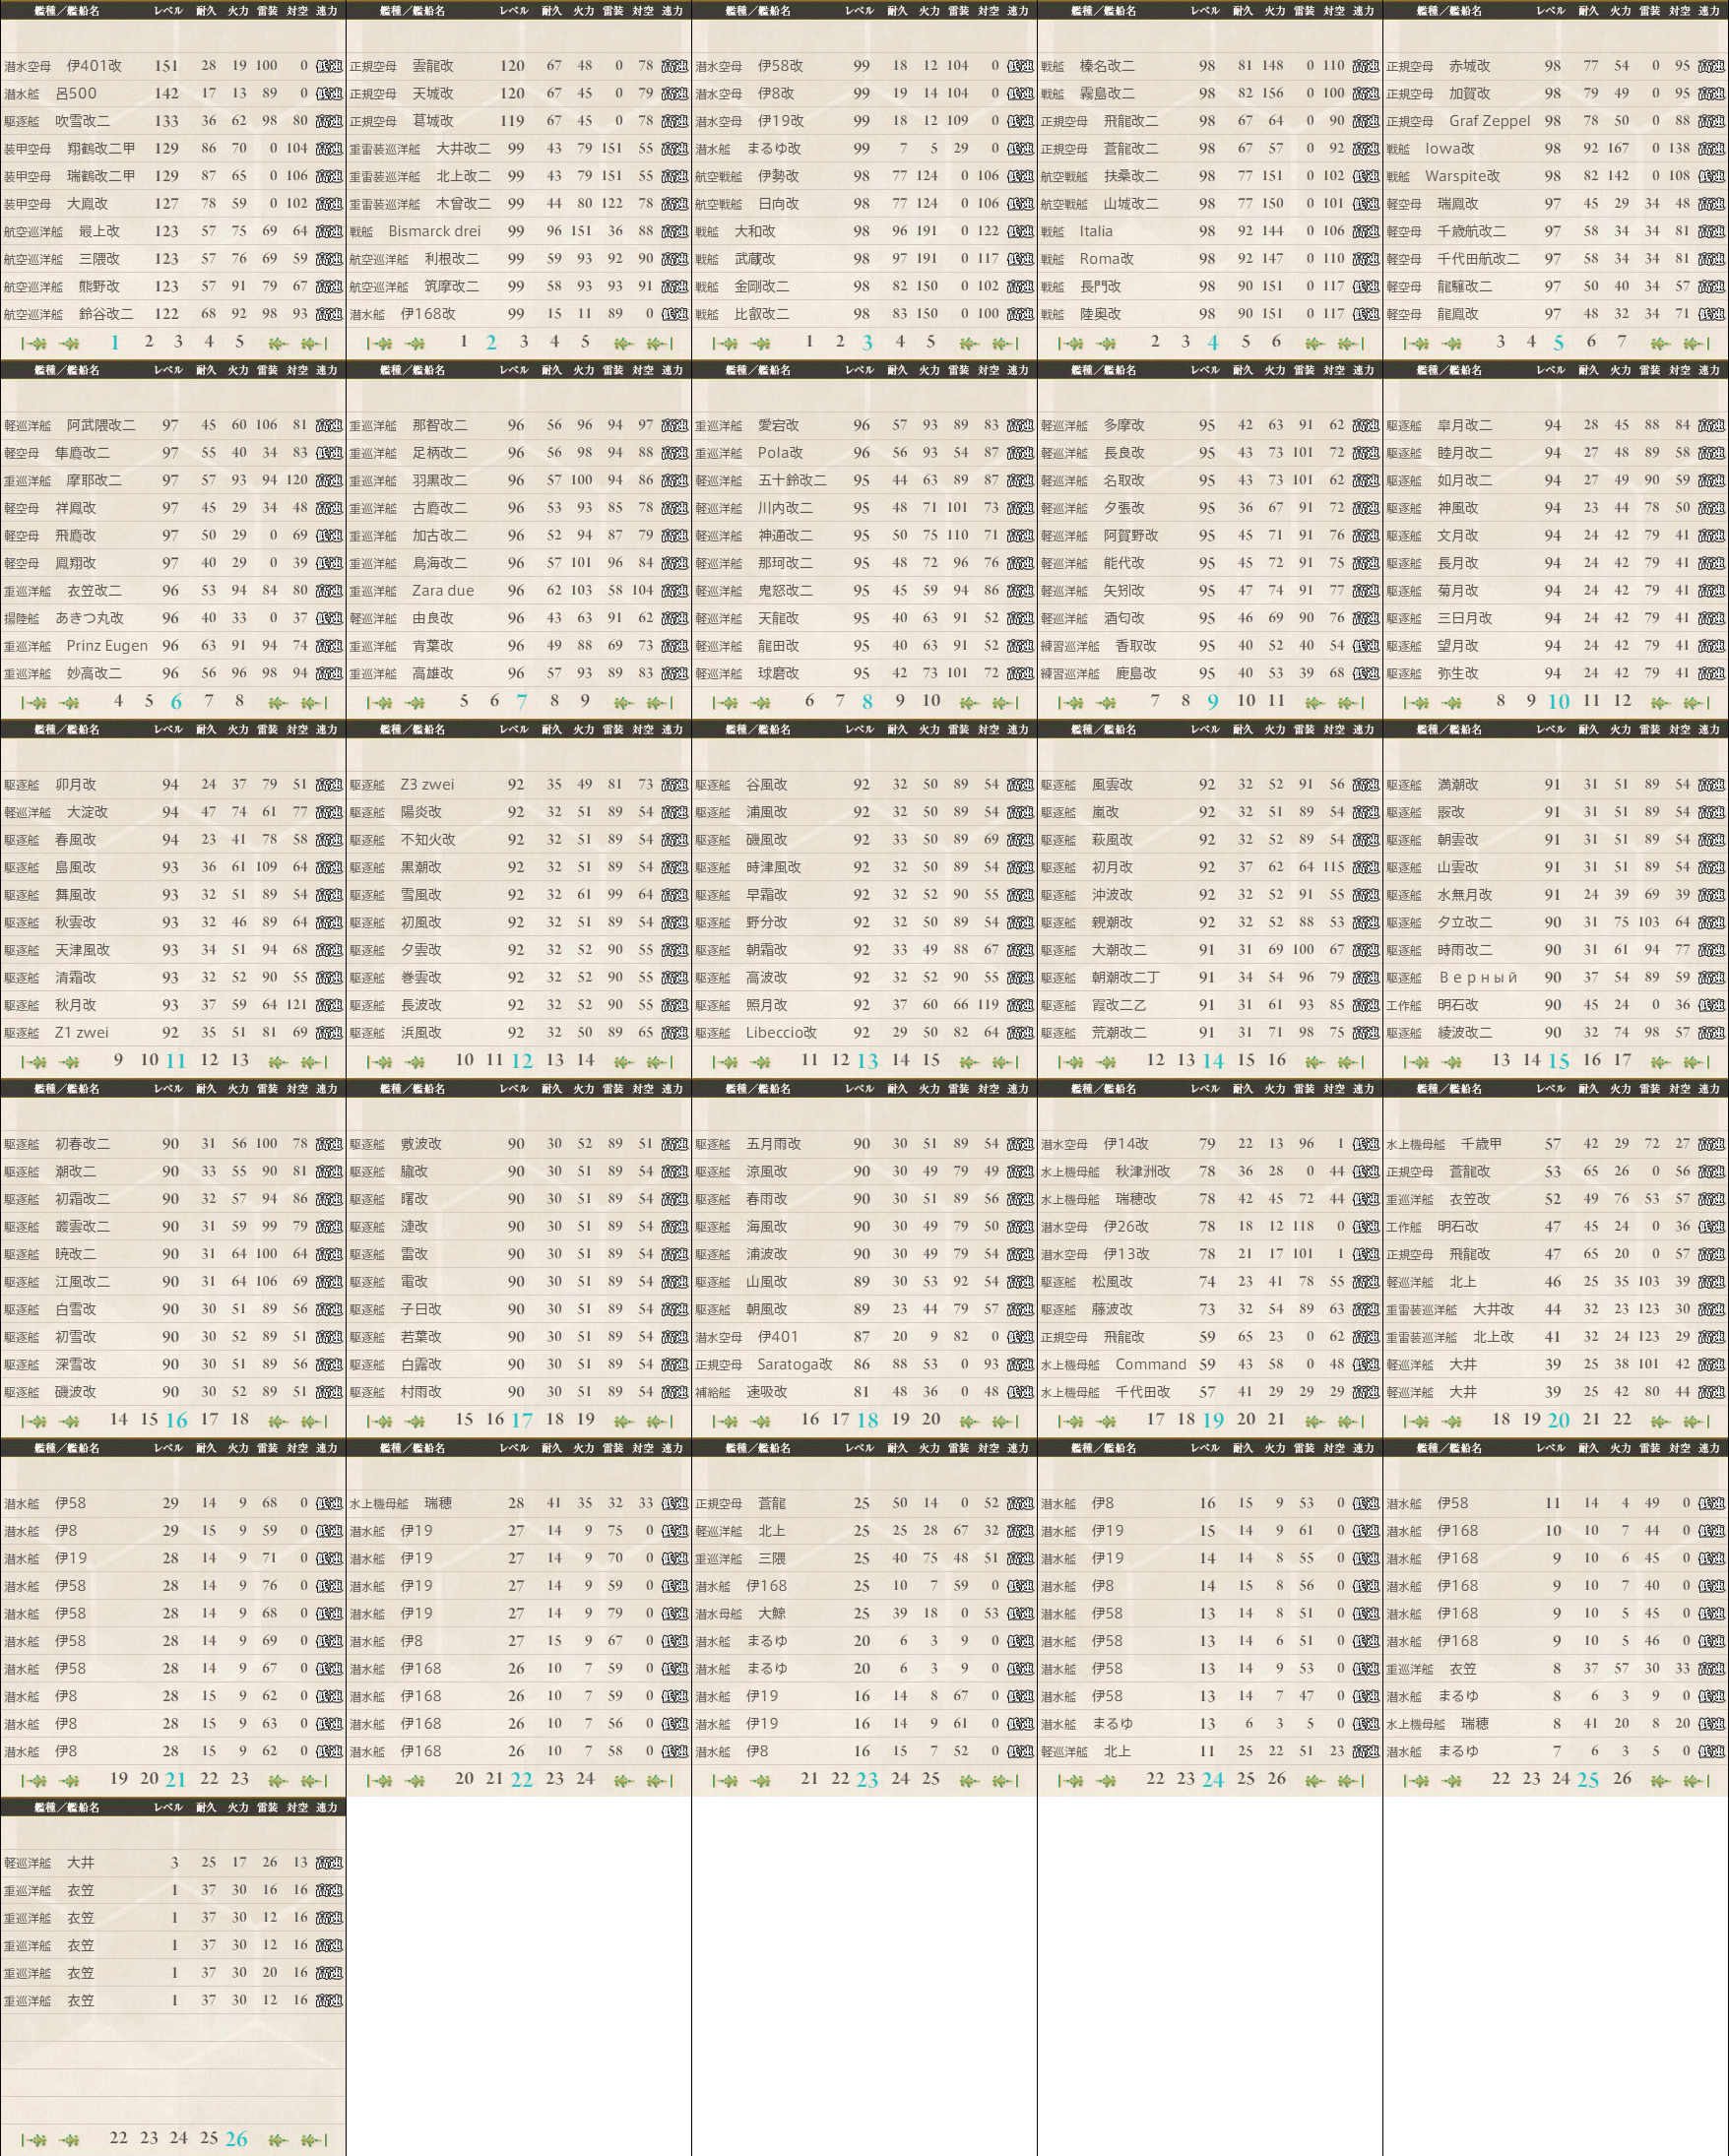 data.kancolle.levelsort.20170507.png